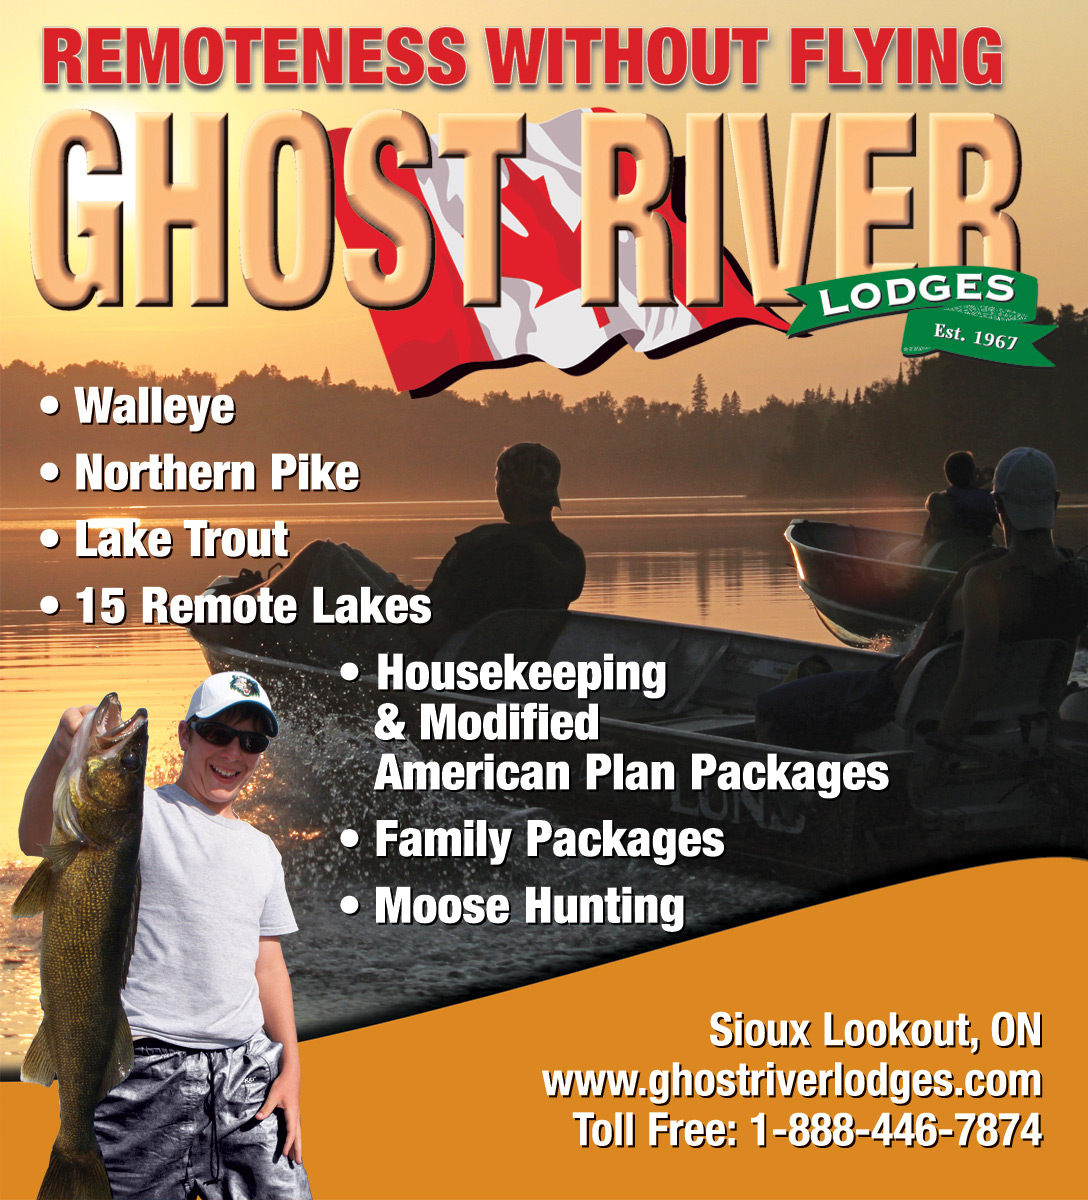 Ghost River Lodges